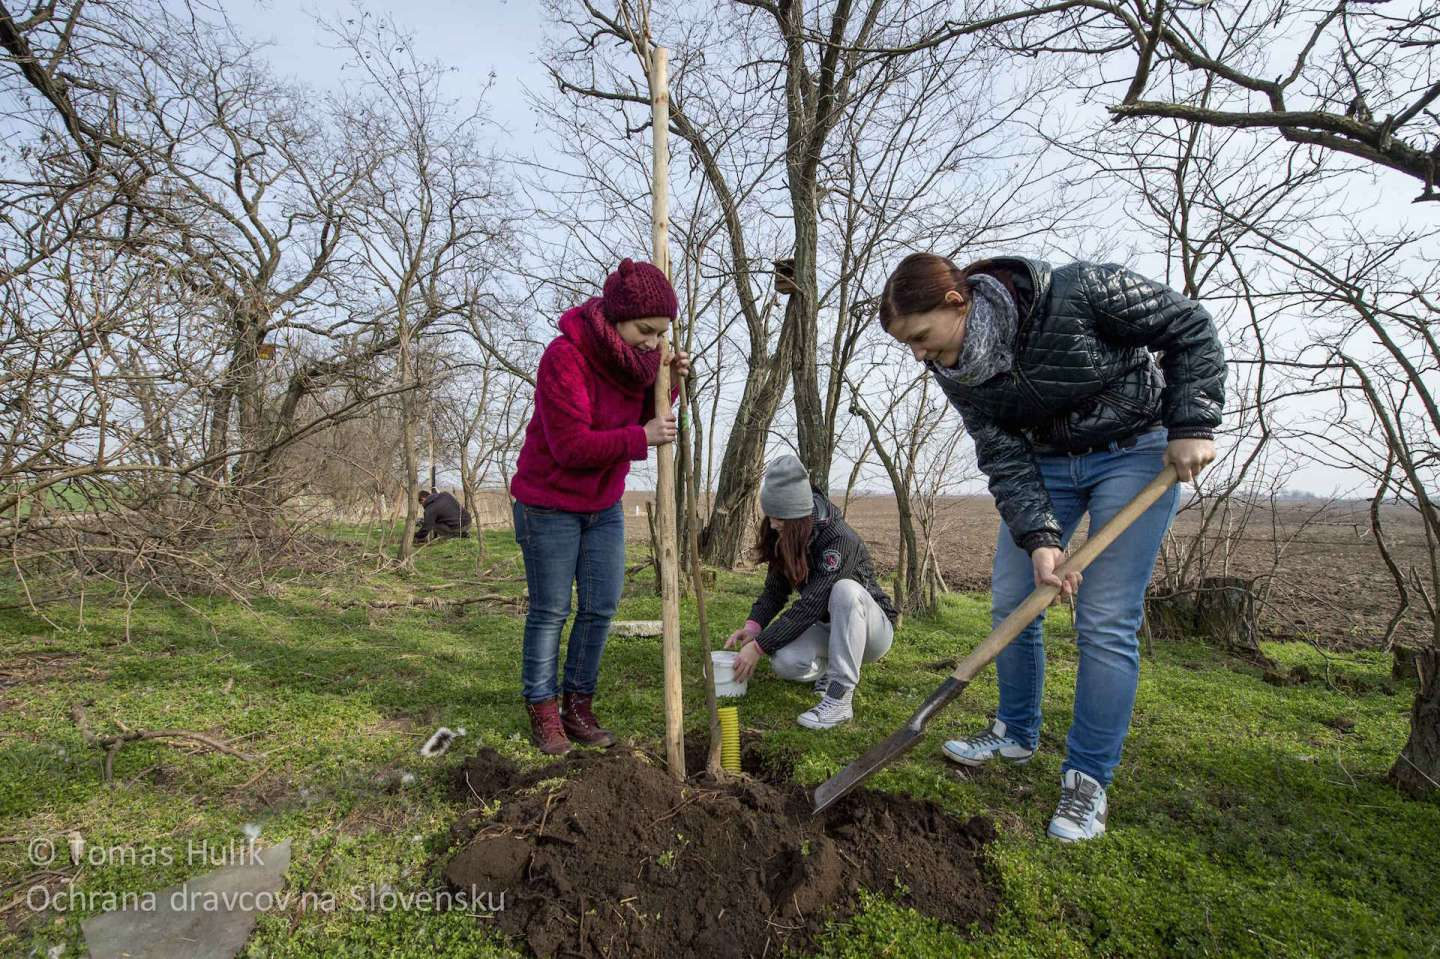 Students from University in Nitra will donate five days to the Earth